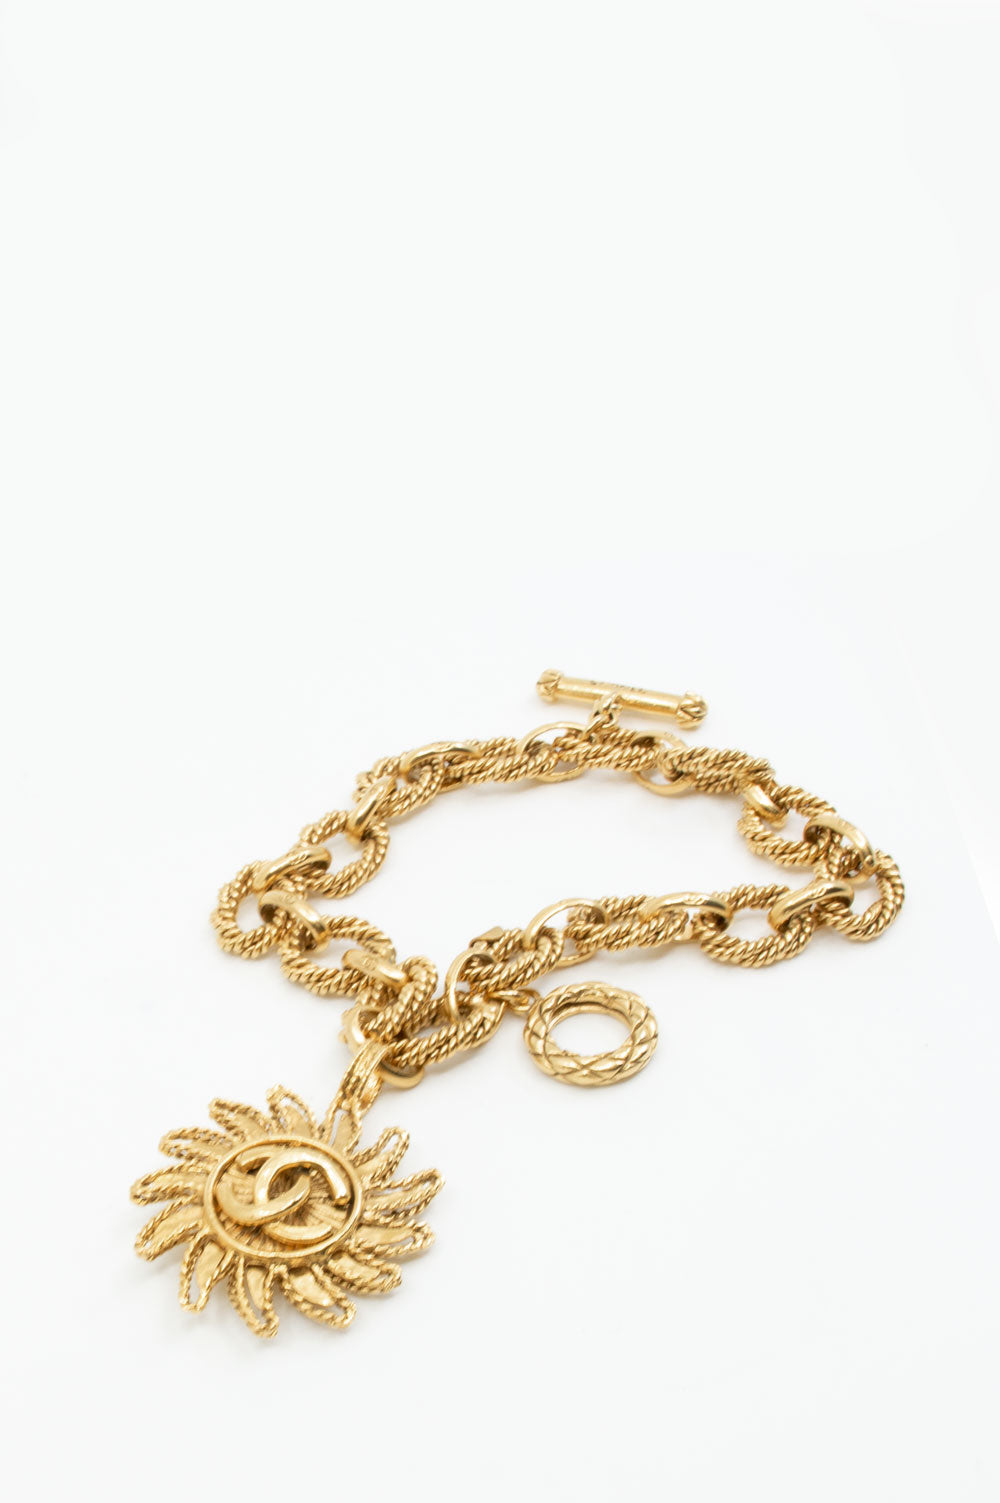 CHANEL Vintage Sun Dangle Bracelet